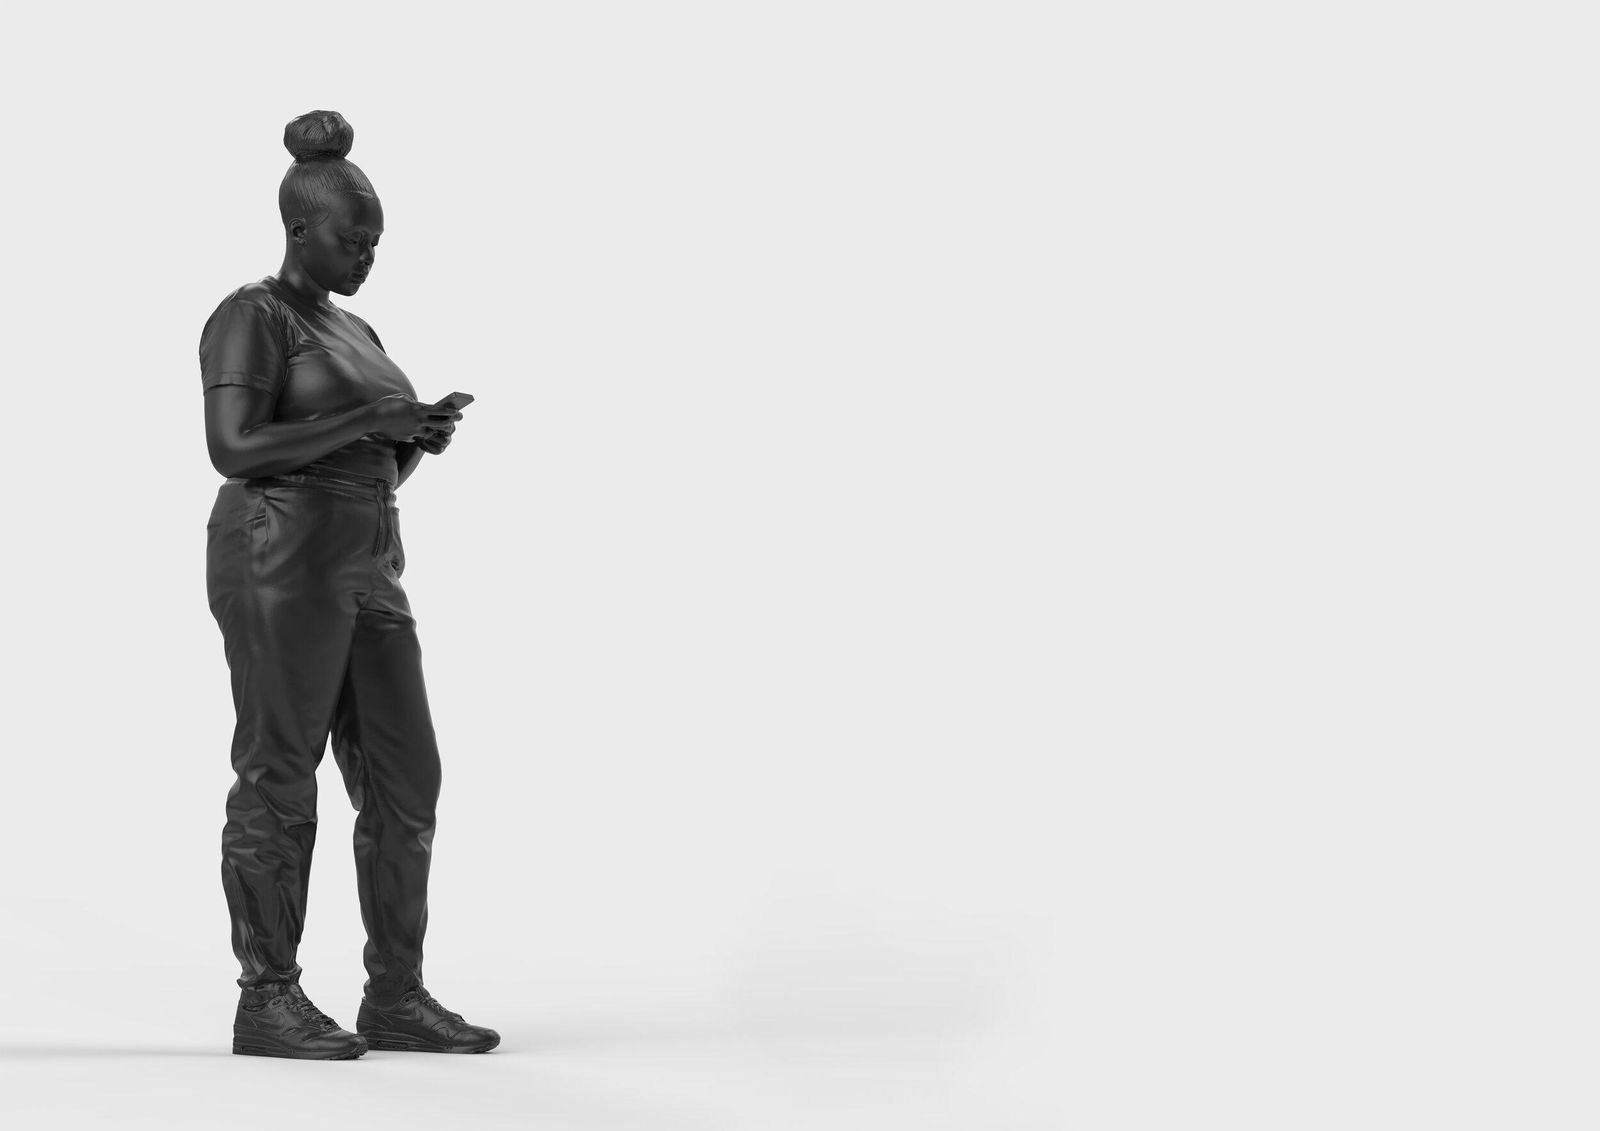 Amid Reckoning on Public Art, Statue of Black 'Everywoman' Unveiled in London